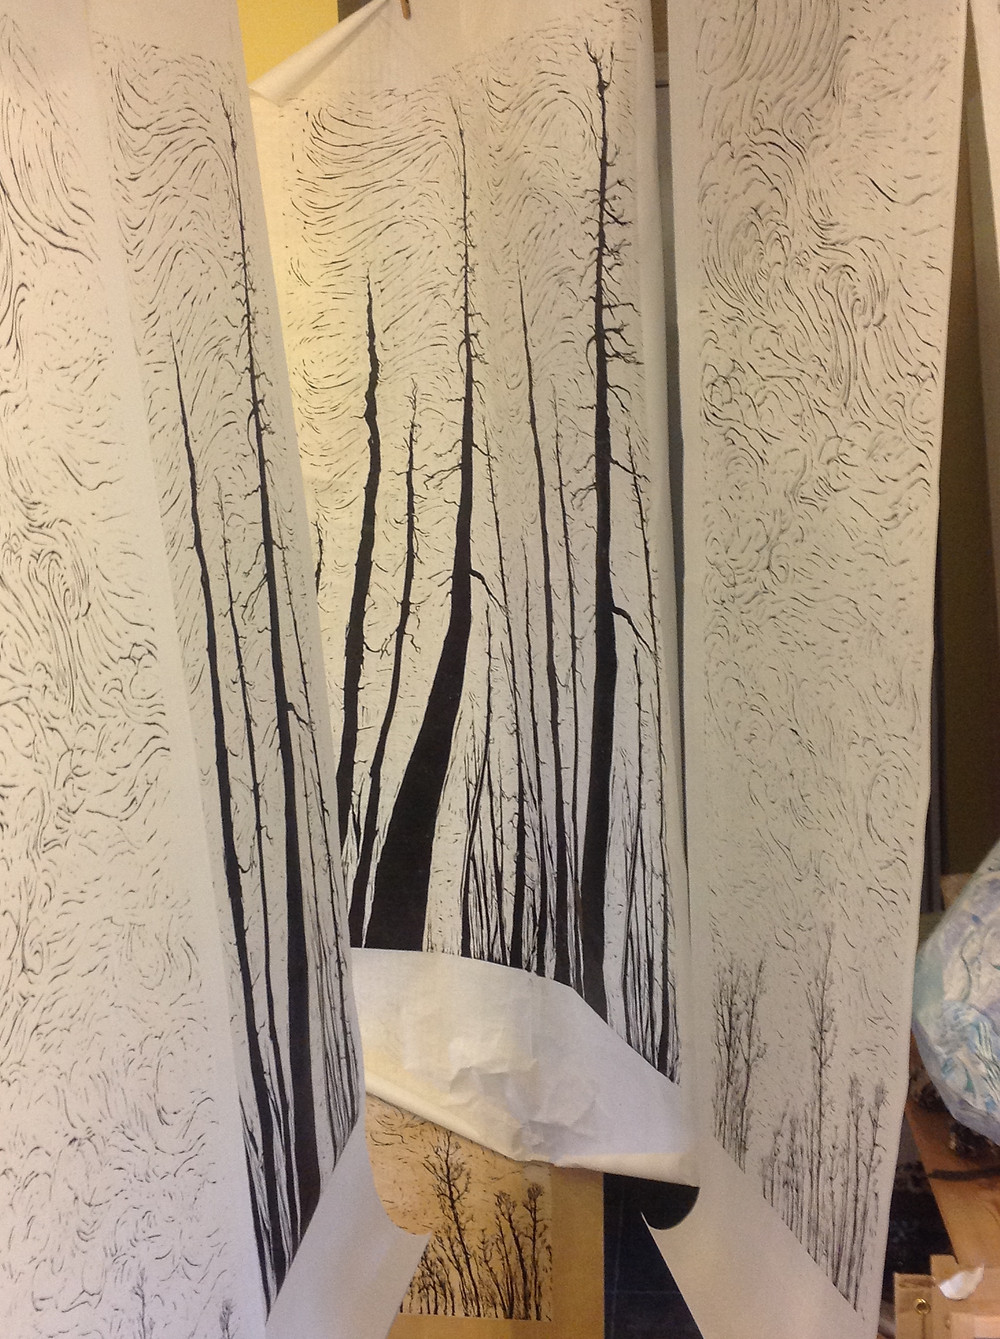 large prints hanging to dry. Not much room left in the studio these days!